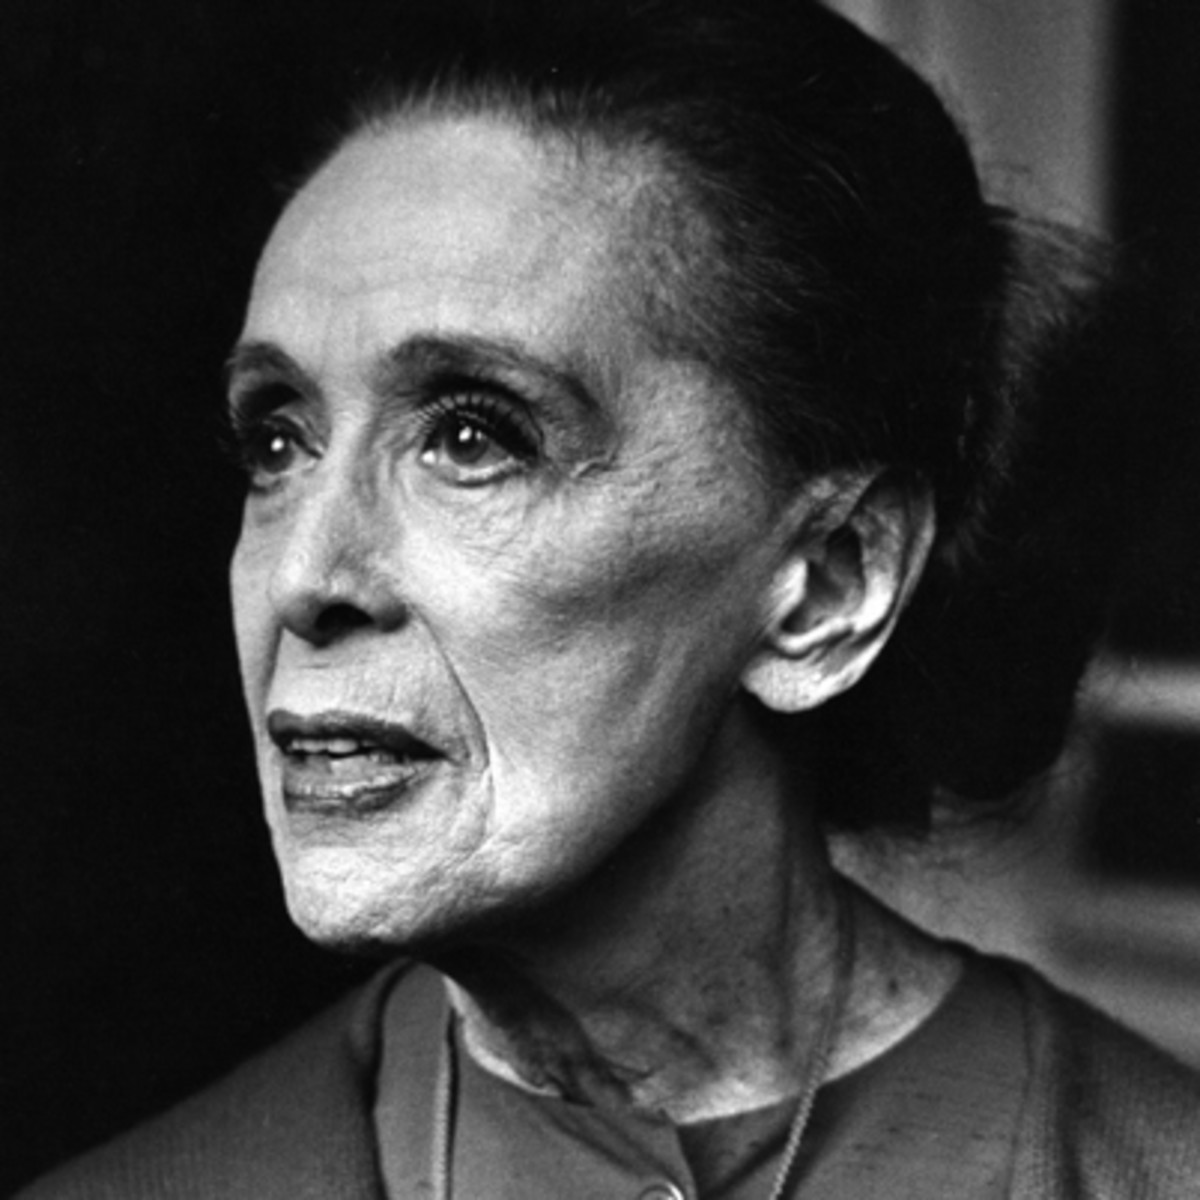 martha graham a dancers life In 1908, the graham family moved to santa barbara, california martha later recalled: california was a world of flowers, oriental people, people with spanish blood, a life completely different from our life in pittsburgh.